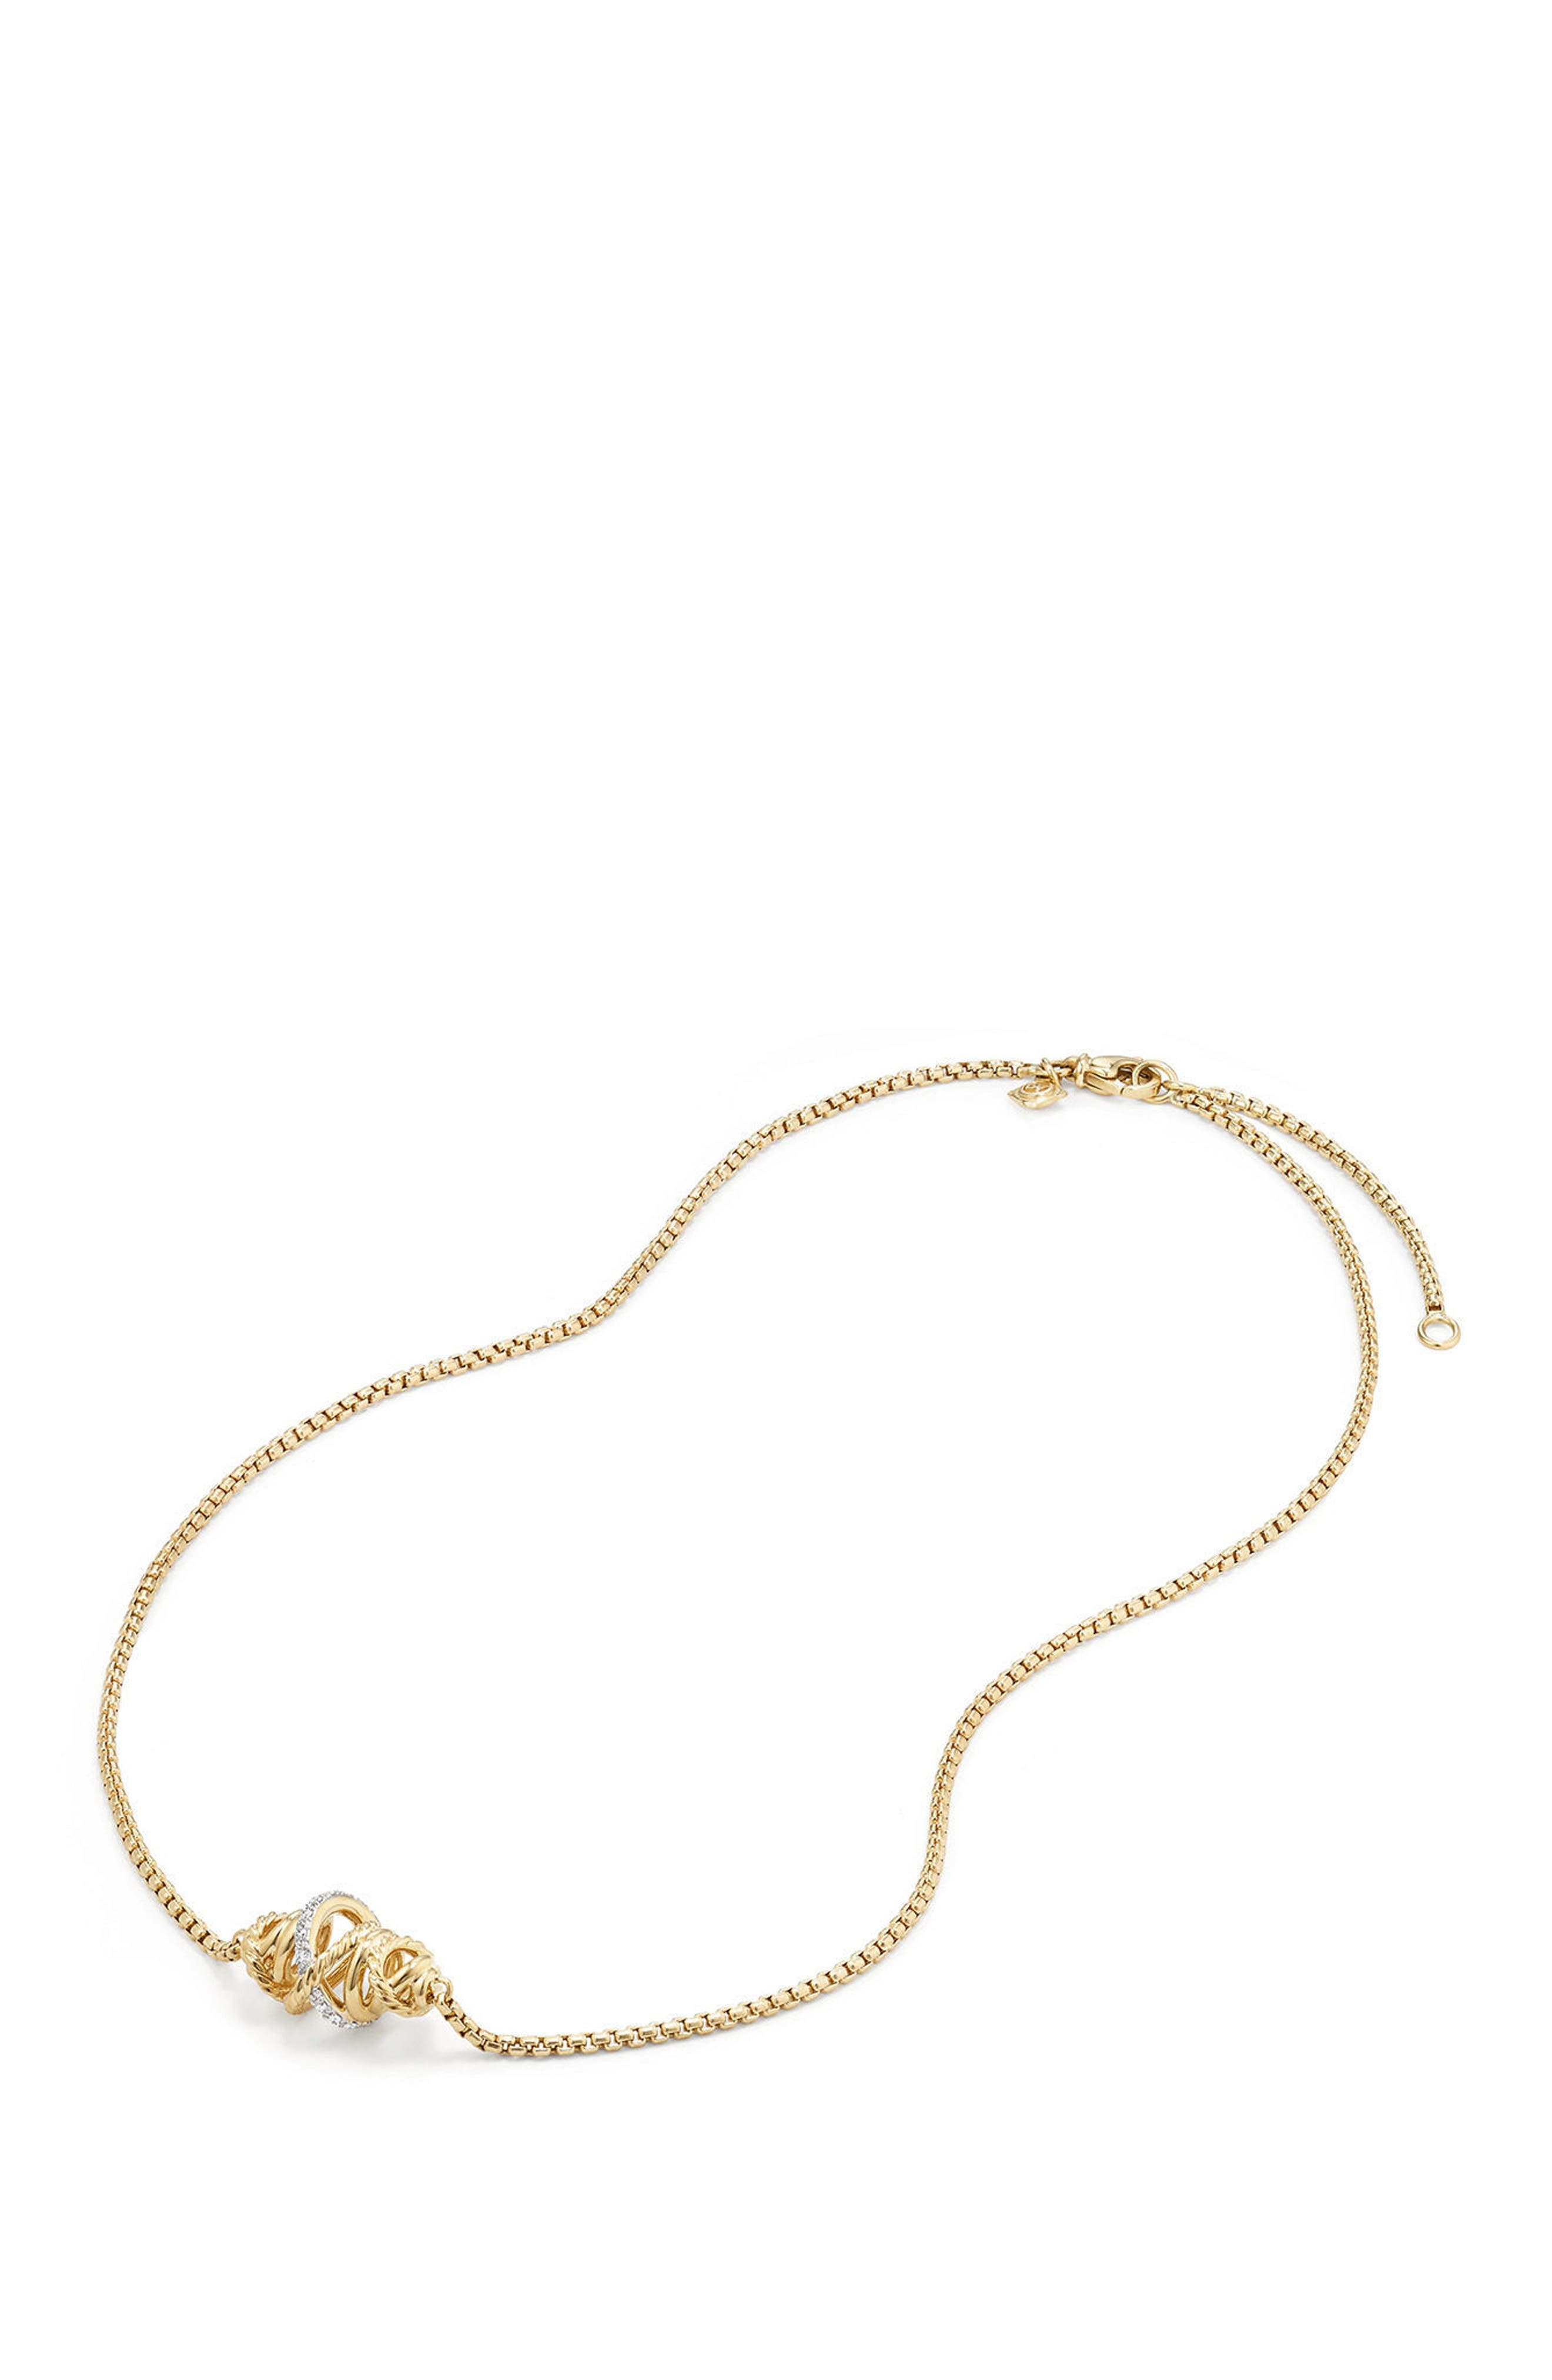 Crossover Station Necklace in 18K Gold with Diamonds,                             Alternate thumbnail 3, color,                             YELLOW GOLD/ DIAMOND